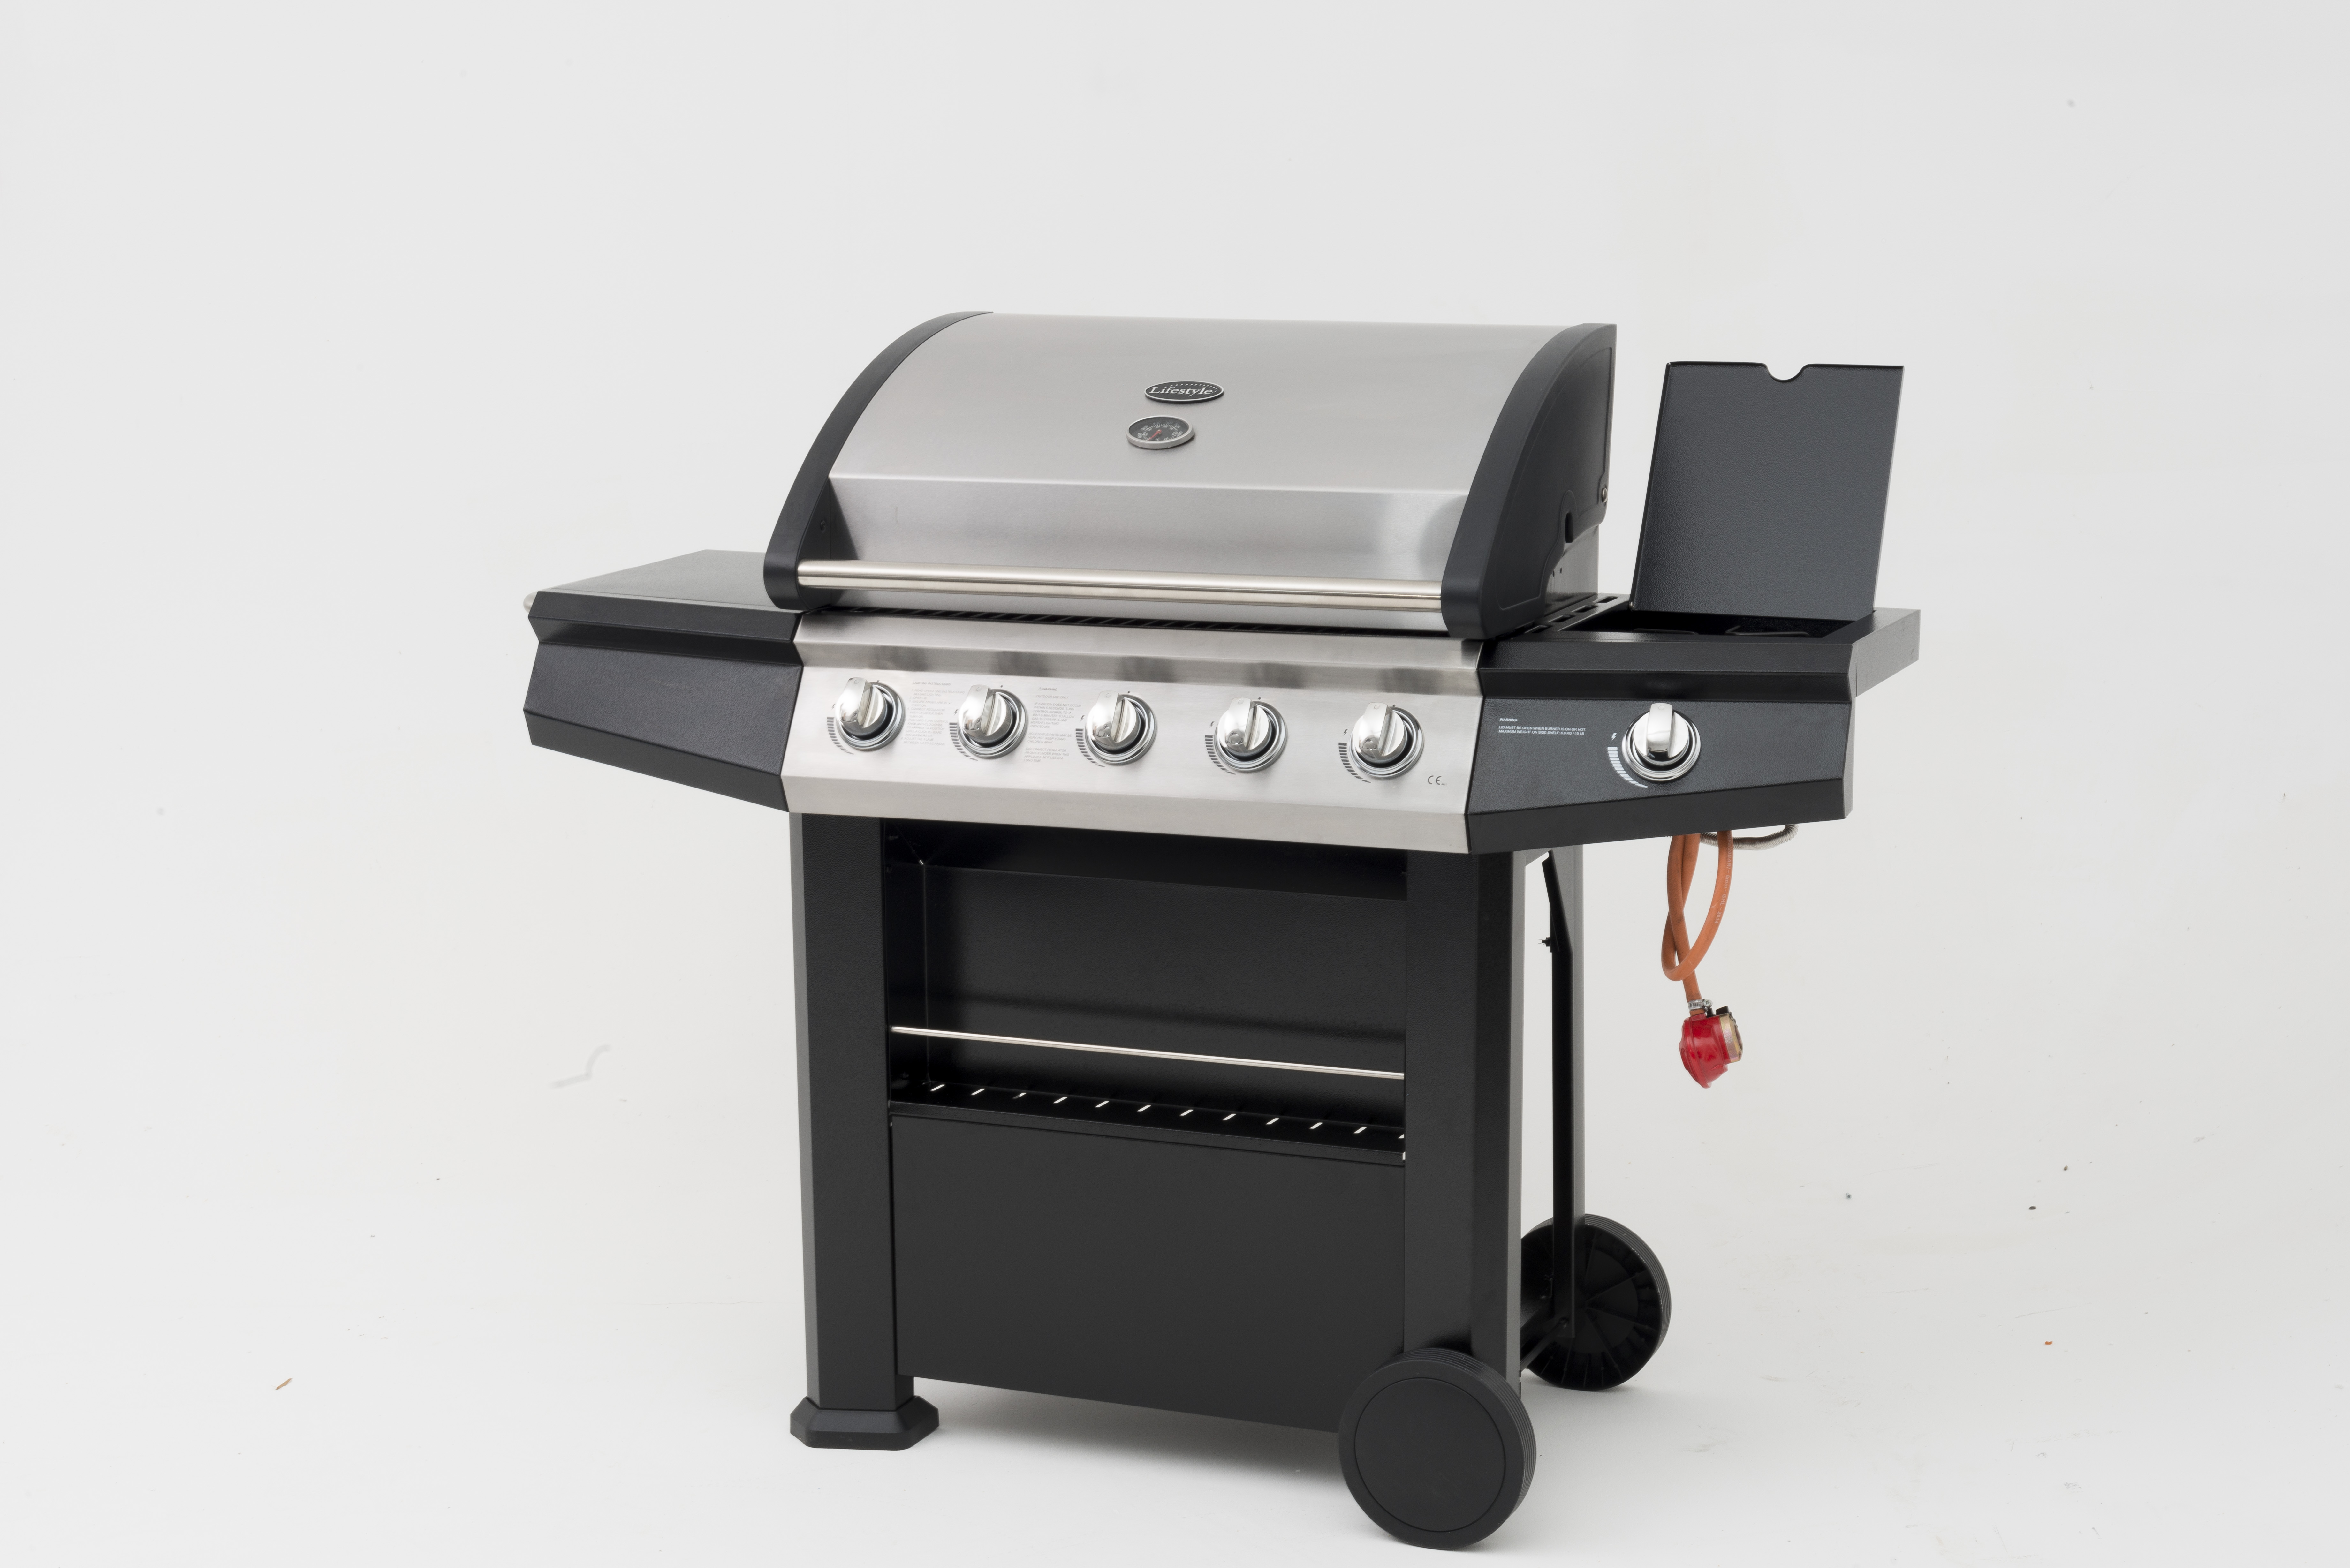 Lifestyle Dominica 5 Burner Gas BBQ